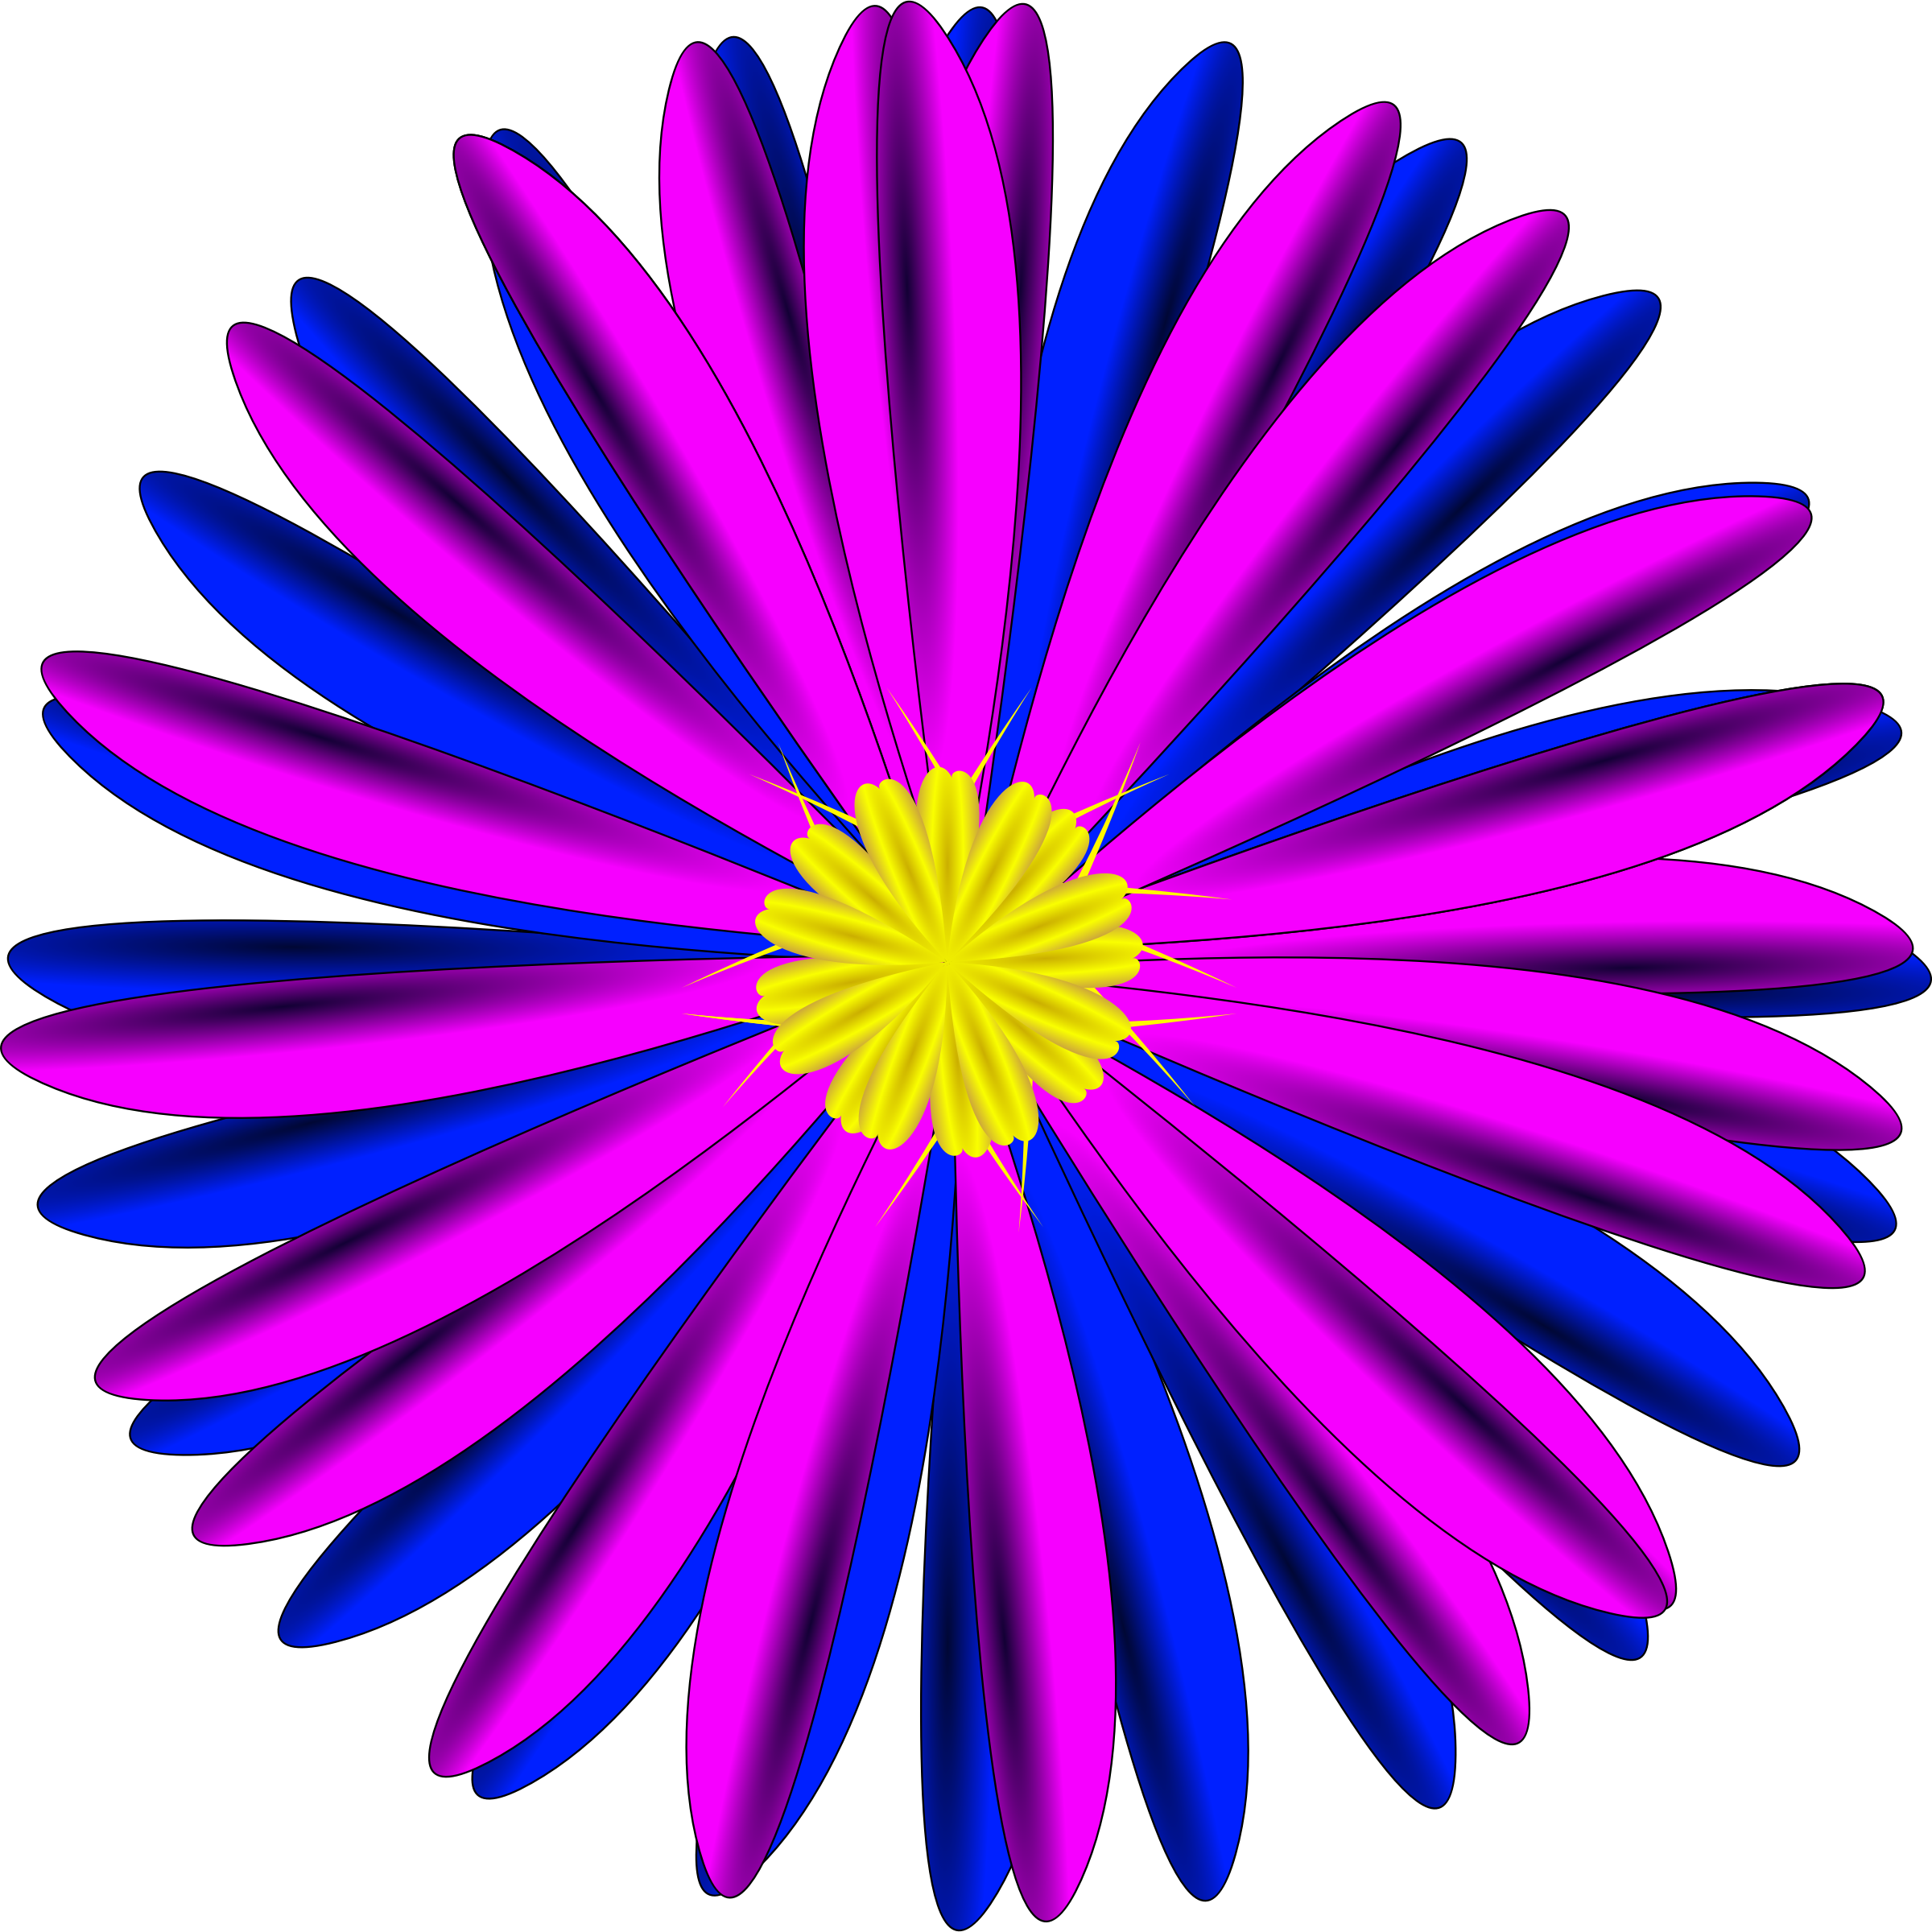 Pink and blue flowers png. Flower icons free downloads